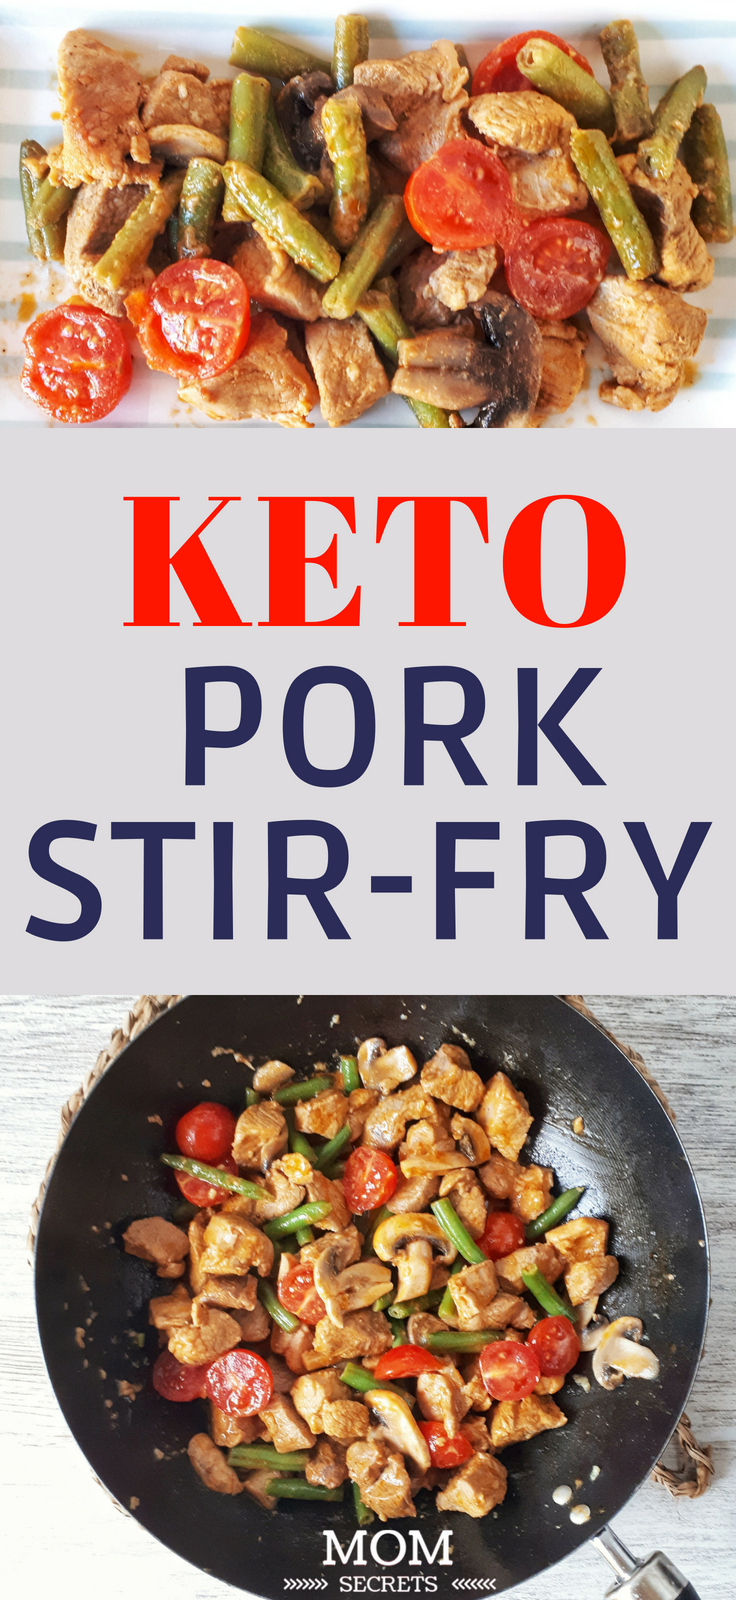 Today I'm bringing you this quick keto pork sit fry recipe using freshvegetables like green beans, mushroom and cherry tomatoes. It's an easy, simple, low carb and paleo whole family meal!